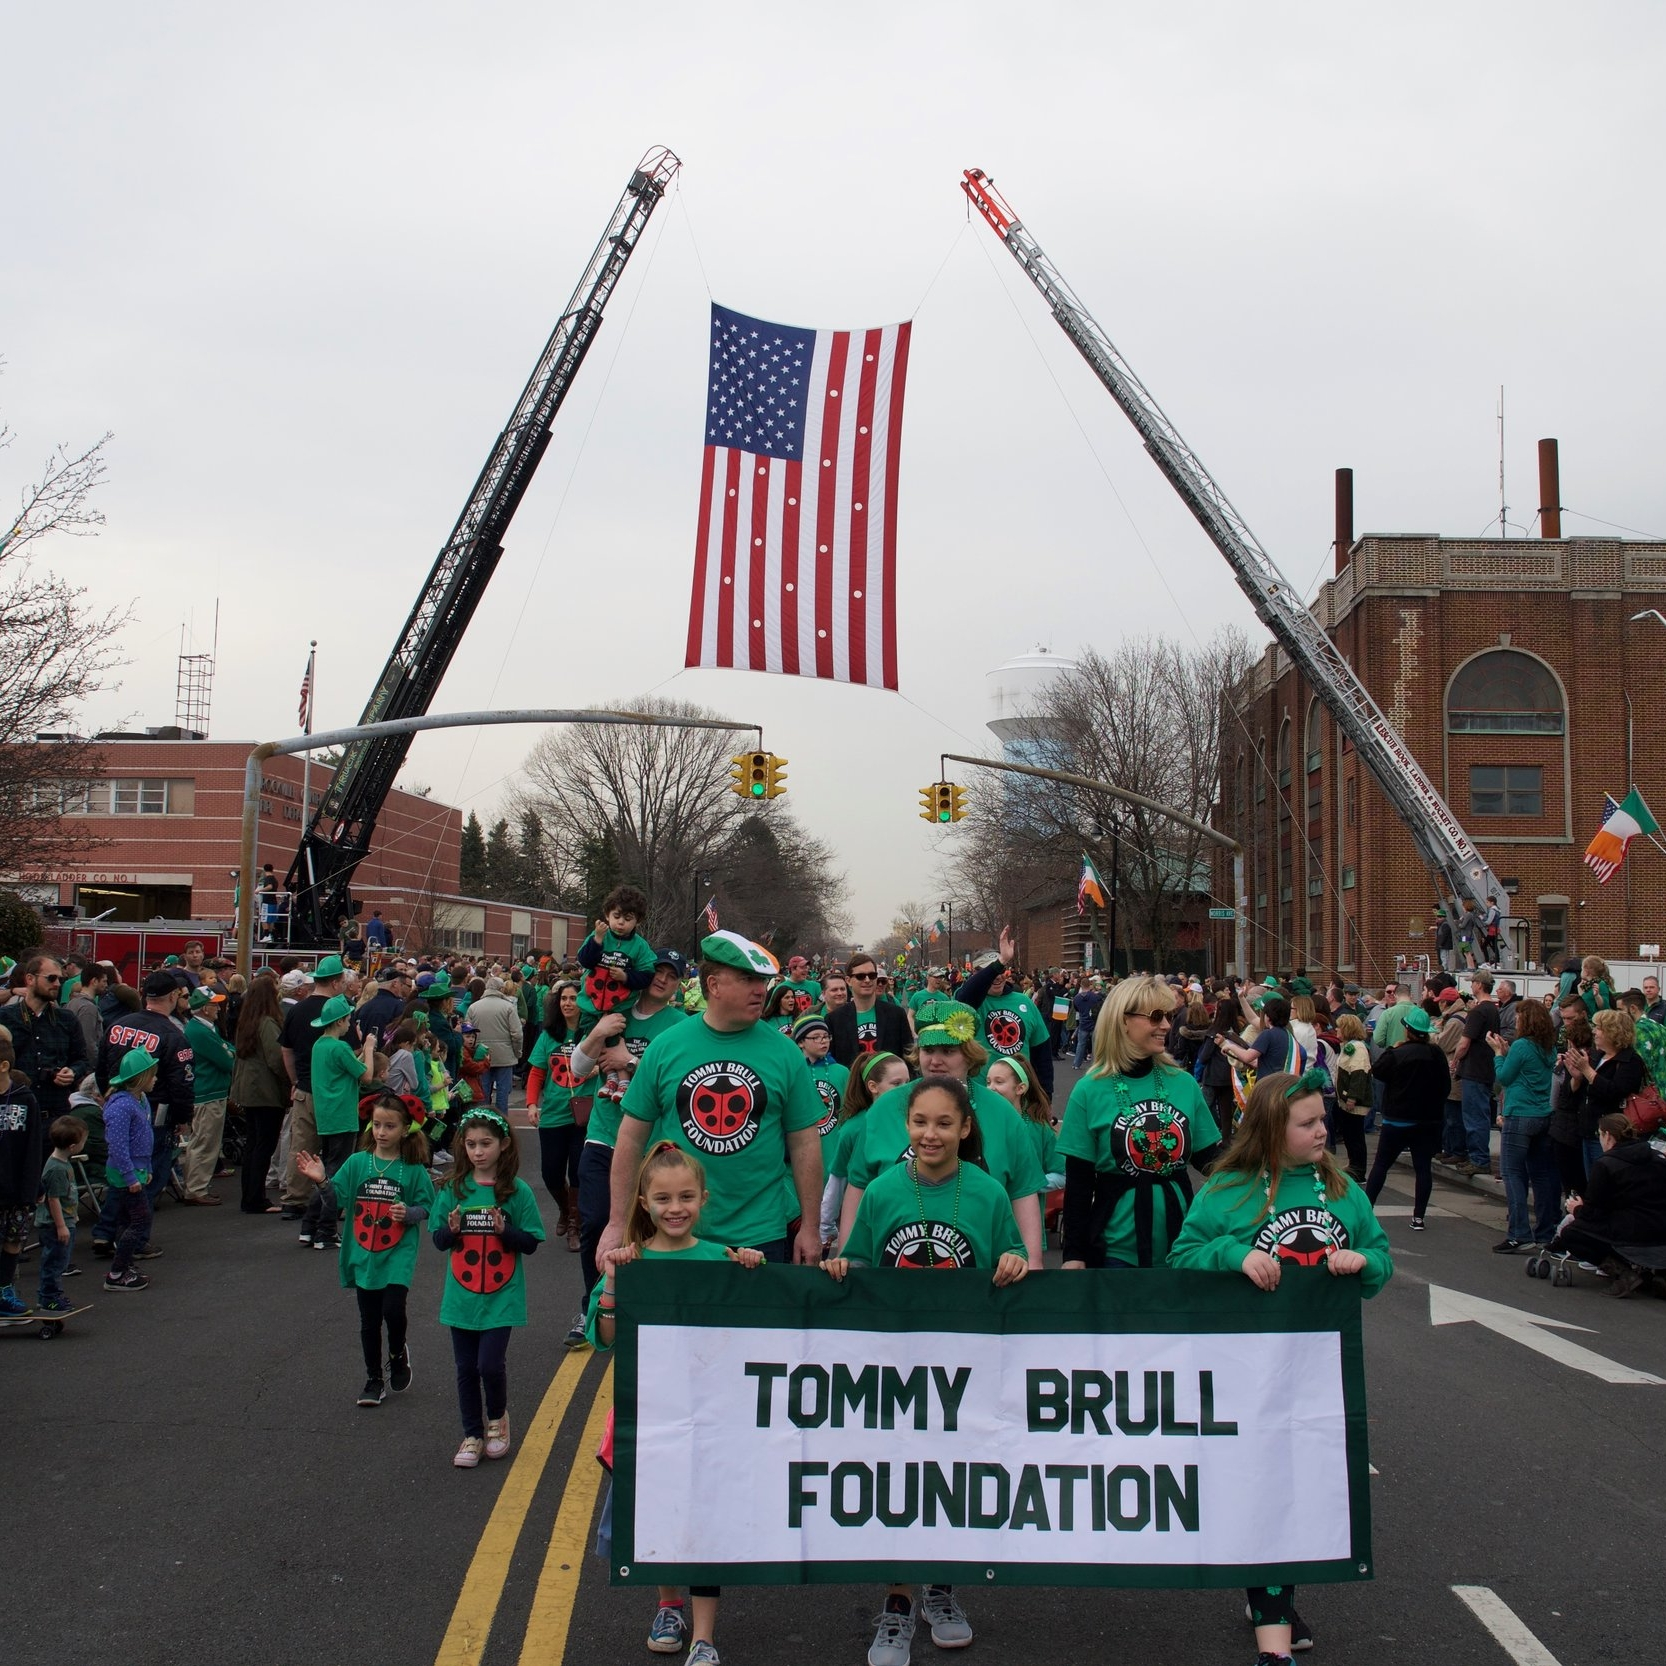 Rockville Centre St Patrick's Parade     In 2016, The Tommy Brull Foundation was honored to be chosen as the Local Charity by the Rockville Centre St. Patrick's Parade. This amazing organization works all year round to organize the 2rd largest parade of its kind in the tri-state area. This organization has taught us so much about fundraising and community as they celebrate their Irish Heritage. Their efforts awarded us $25,000 and an experience that will never be forgotten.